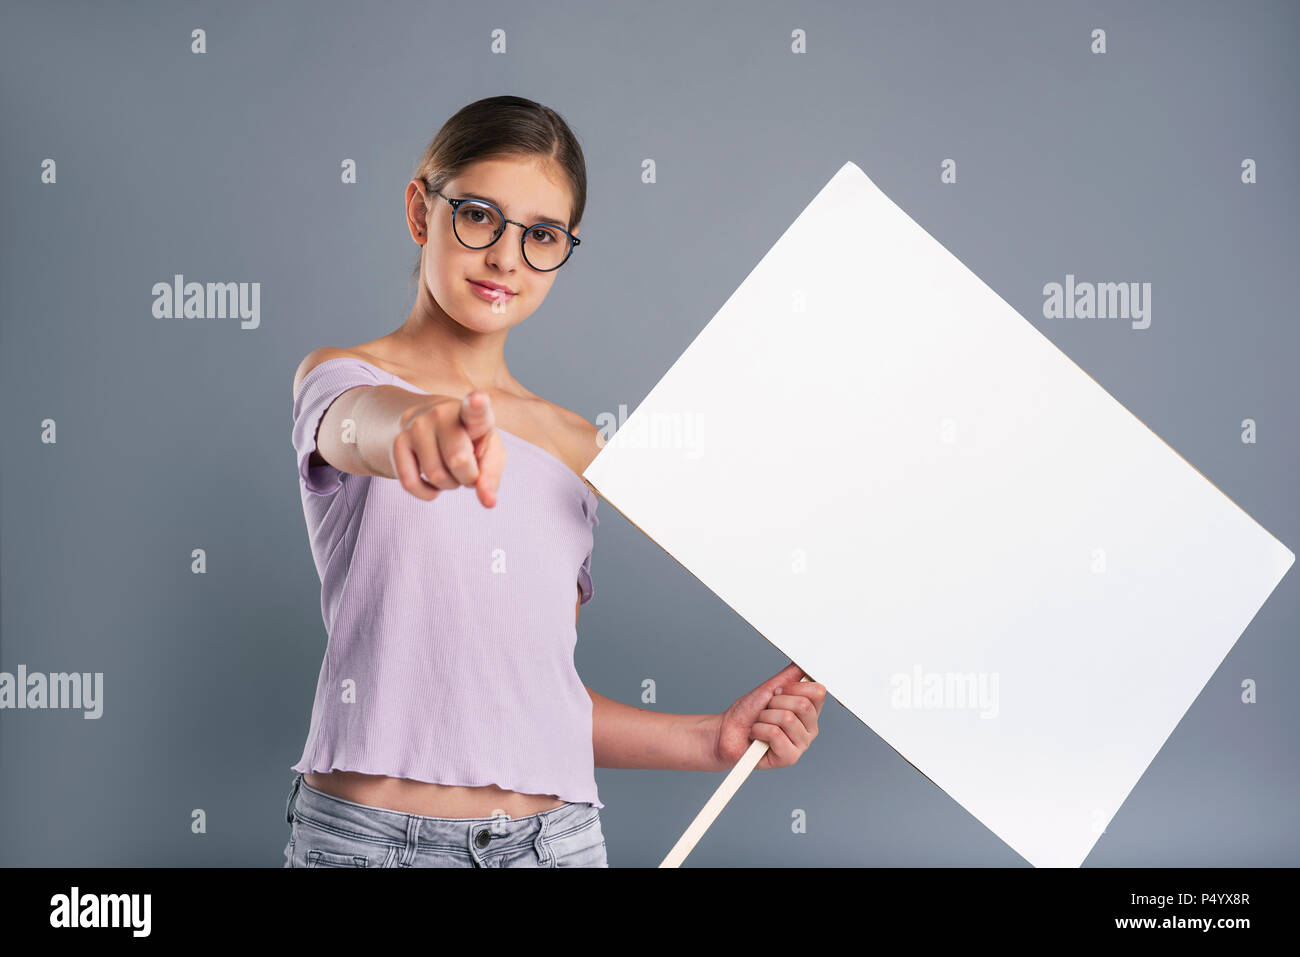 Cute teenage girl holding banner and pointing - Stock Image